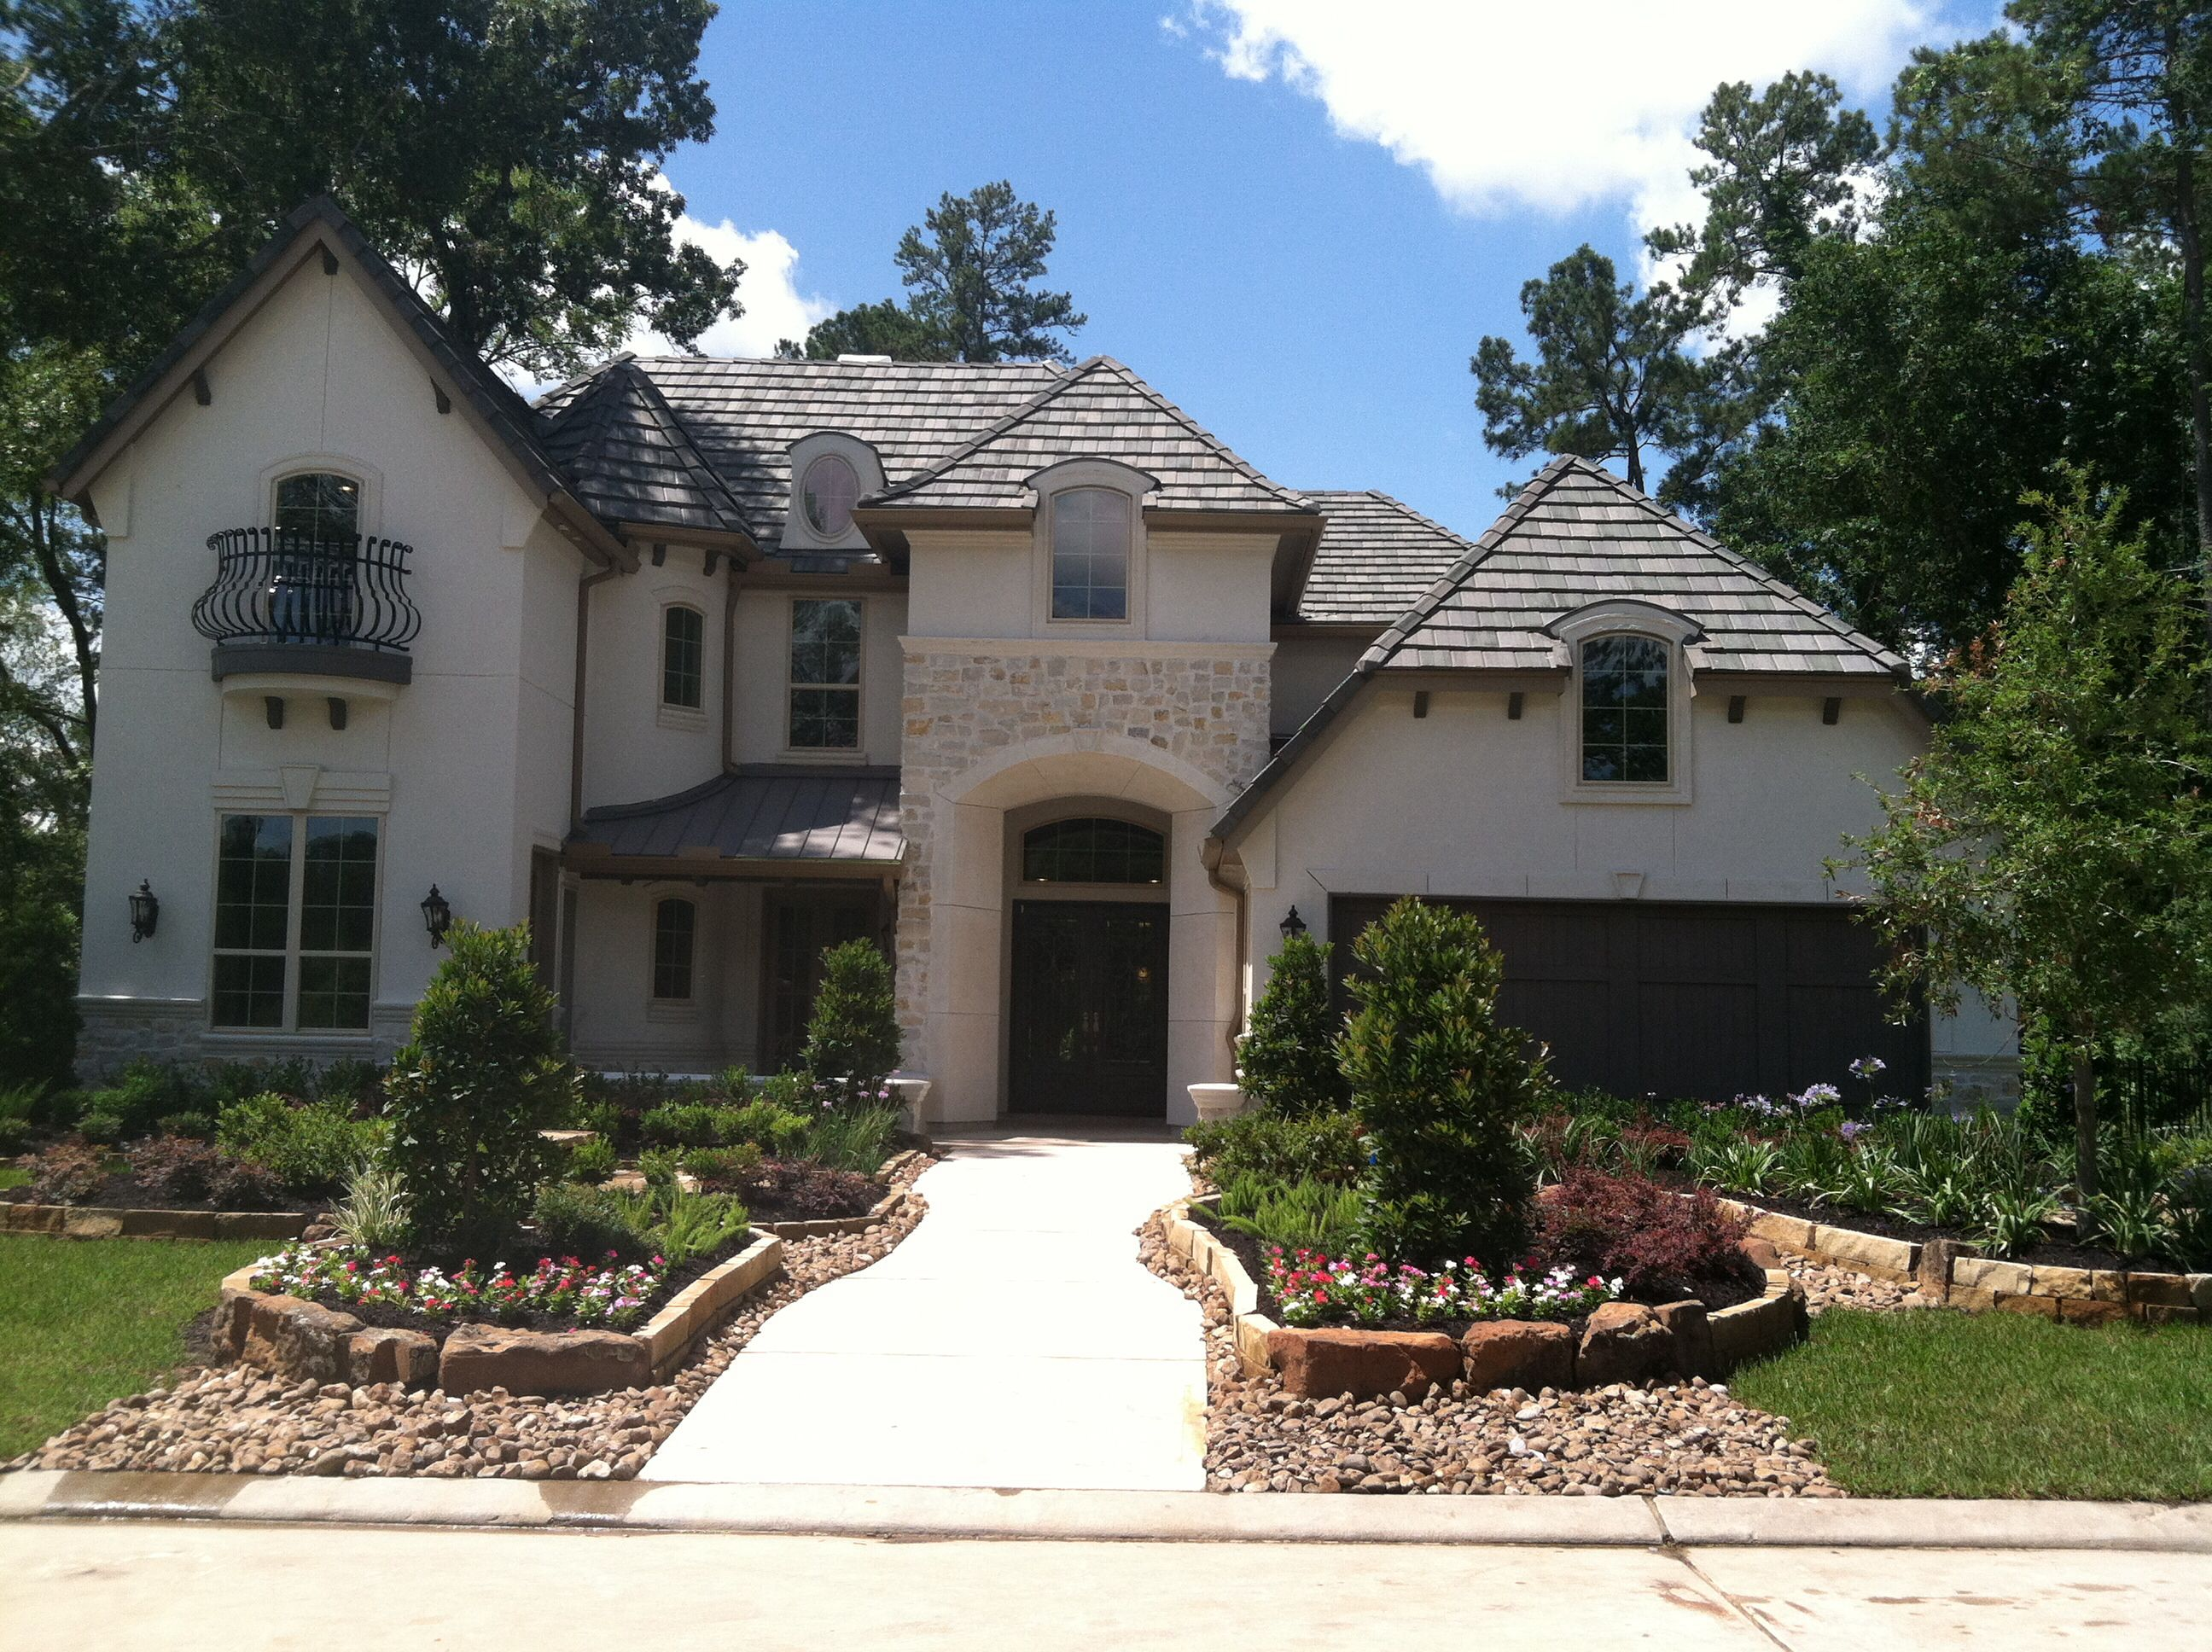 Dr Horton Opens New Emerald Homes Model In Spring, Tx